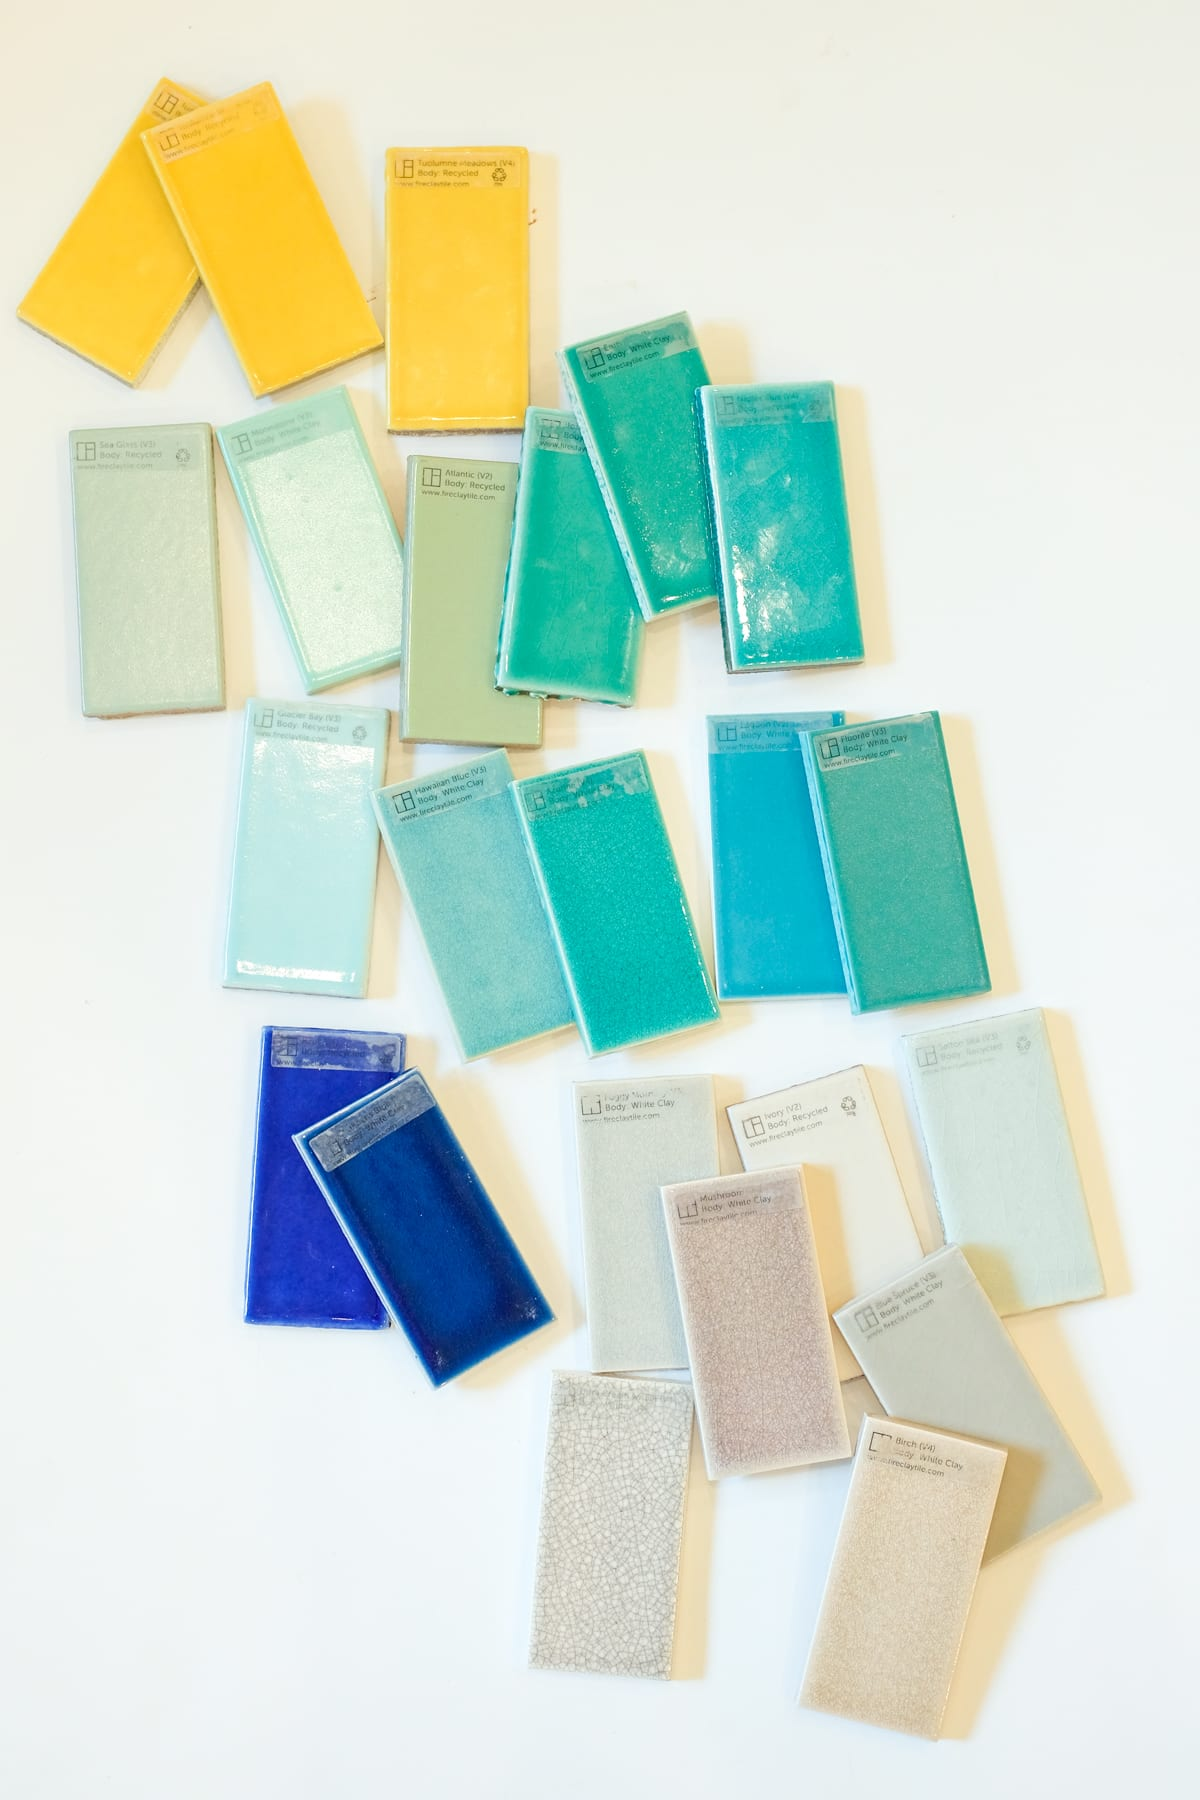 Fireclay Tile Samples